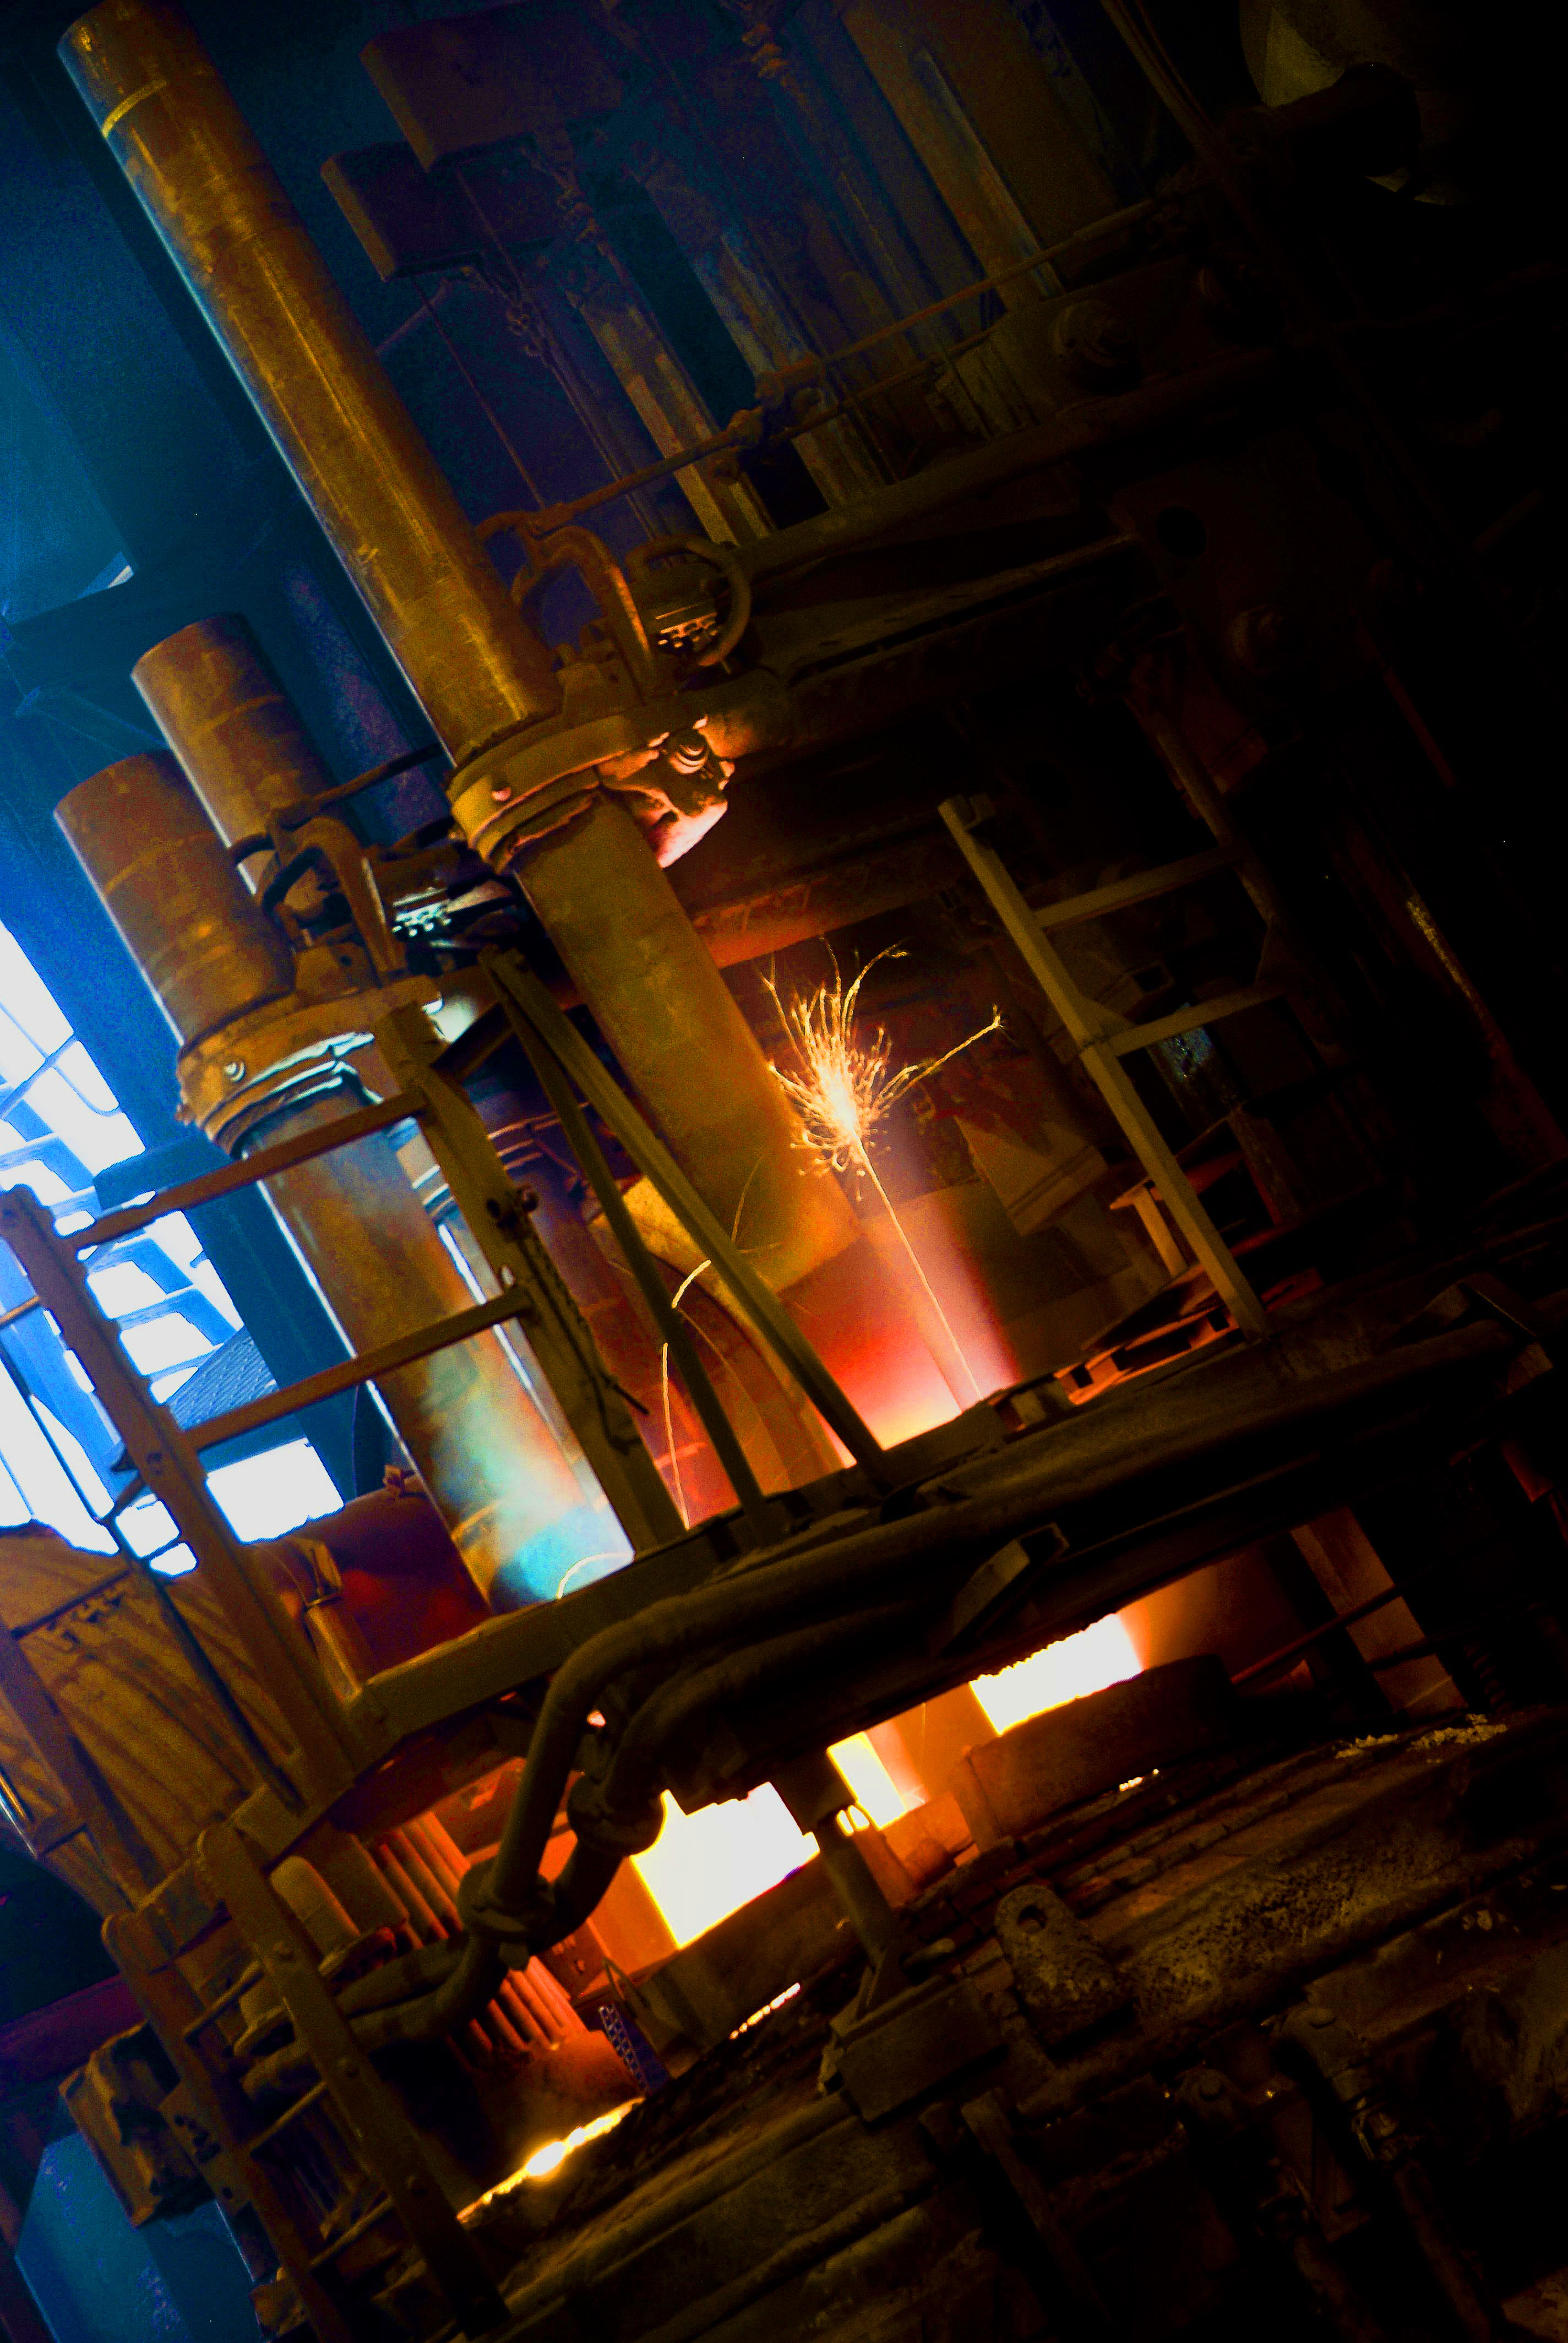 Industrial photography: Pouring molten metal